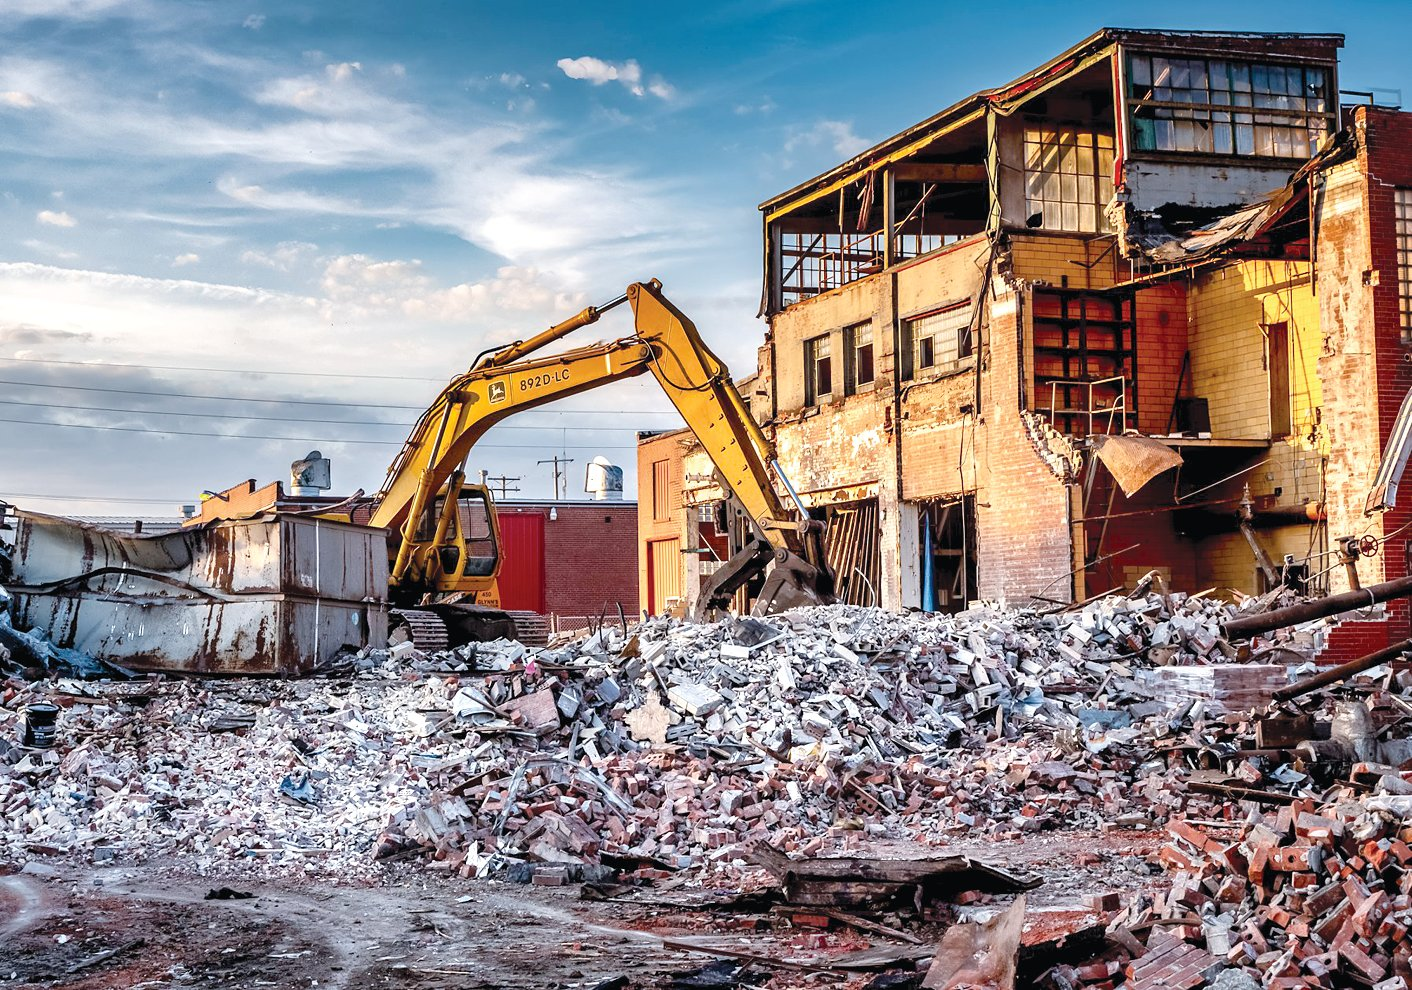 One of the excavators used by Glynn Demolition tears through the back end of the former Litchfield Creamery Building. Hopes are high that the site will be given new life over the next few years, with plans for a recreation center underway.